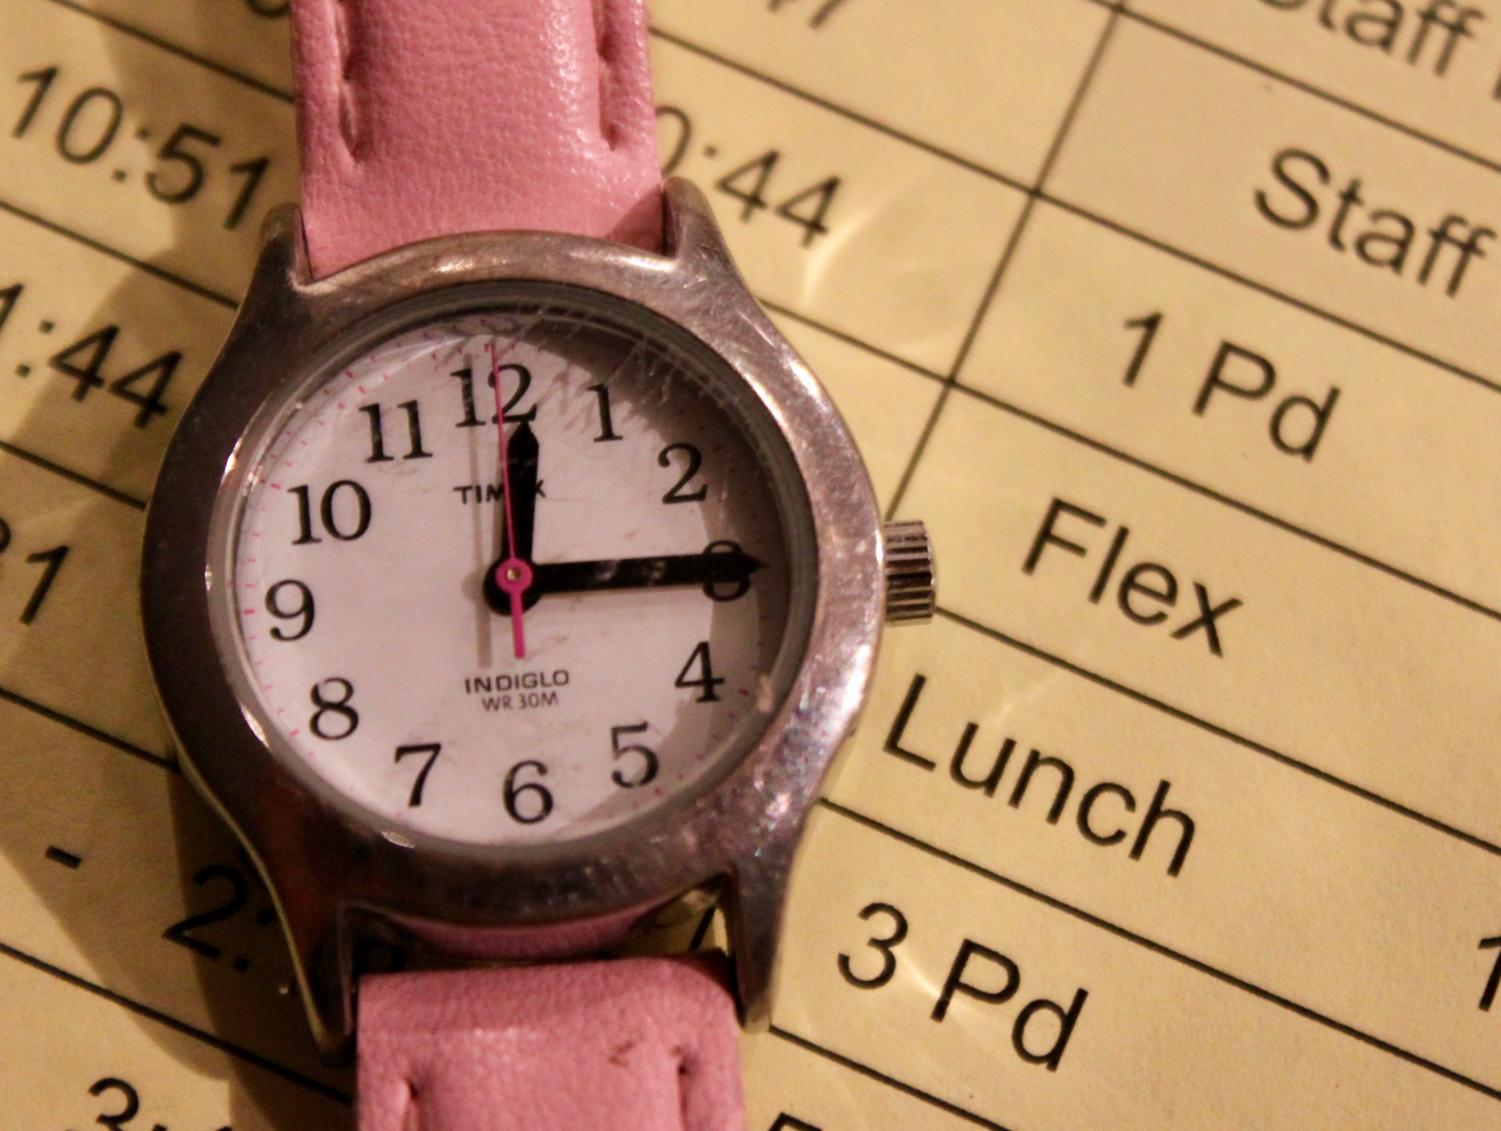 Flex time on Wednesdays and Thursdays will allow student-athletes to catch up on work they miss for sporting events.